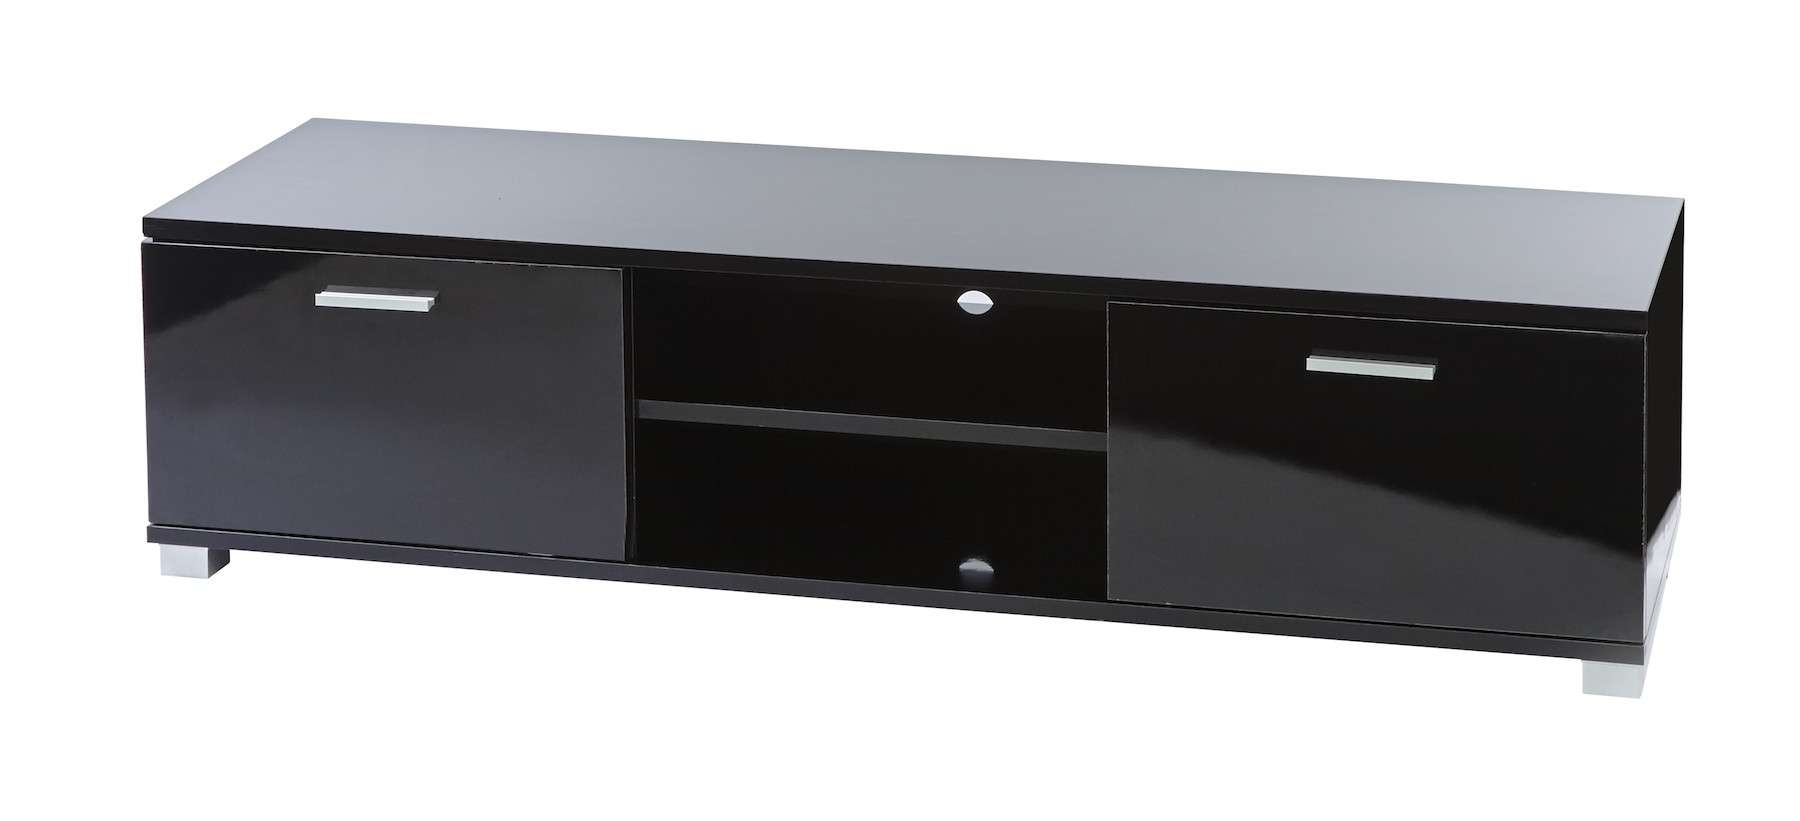 Sd Ht01 Black Gloss Tv Cabinet For Up To 60 Inch Lcd Led Screens For Black Gloss Tv Cabinets (View 7 of 20)